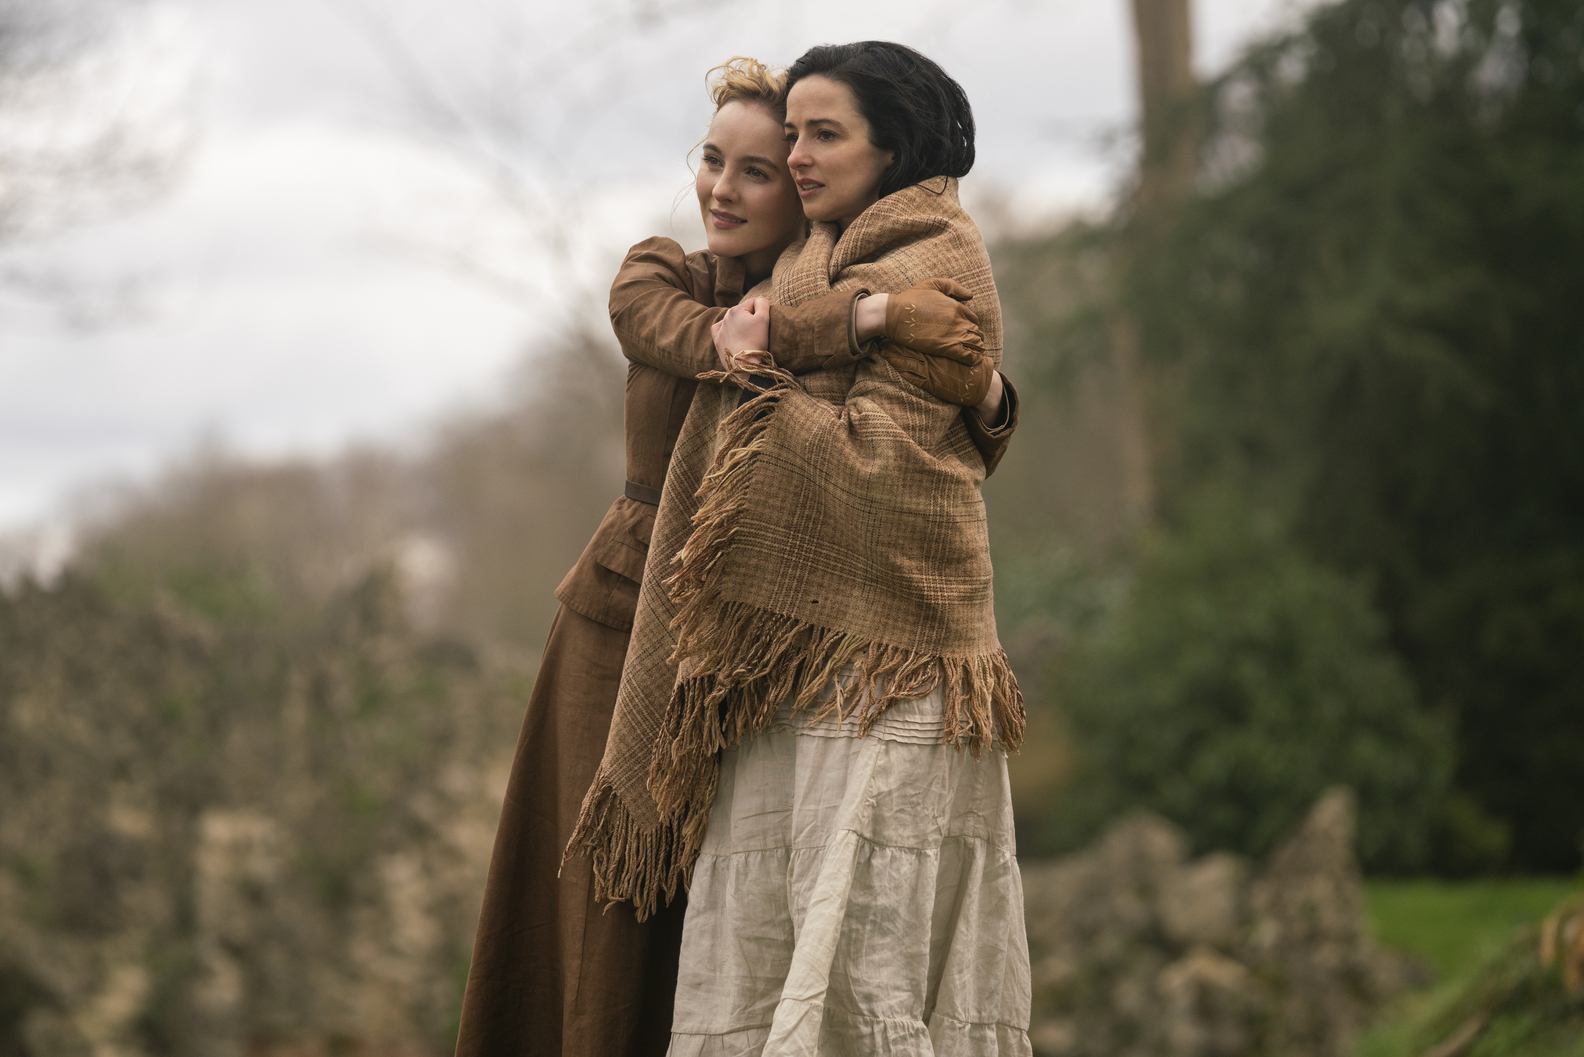 Ann Skelly and Laura Donnelly